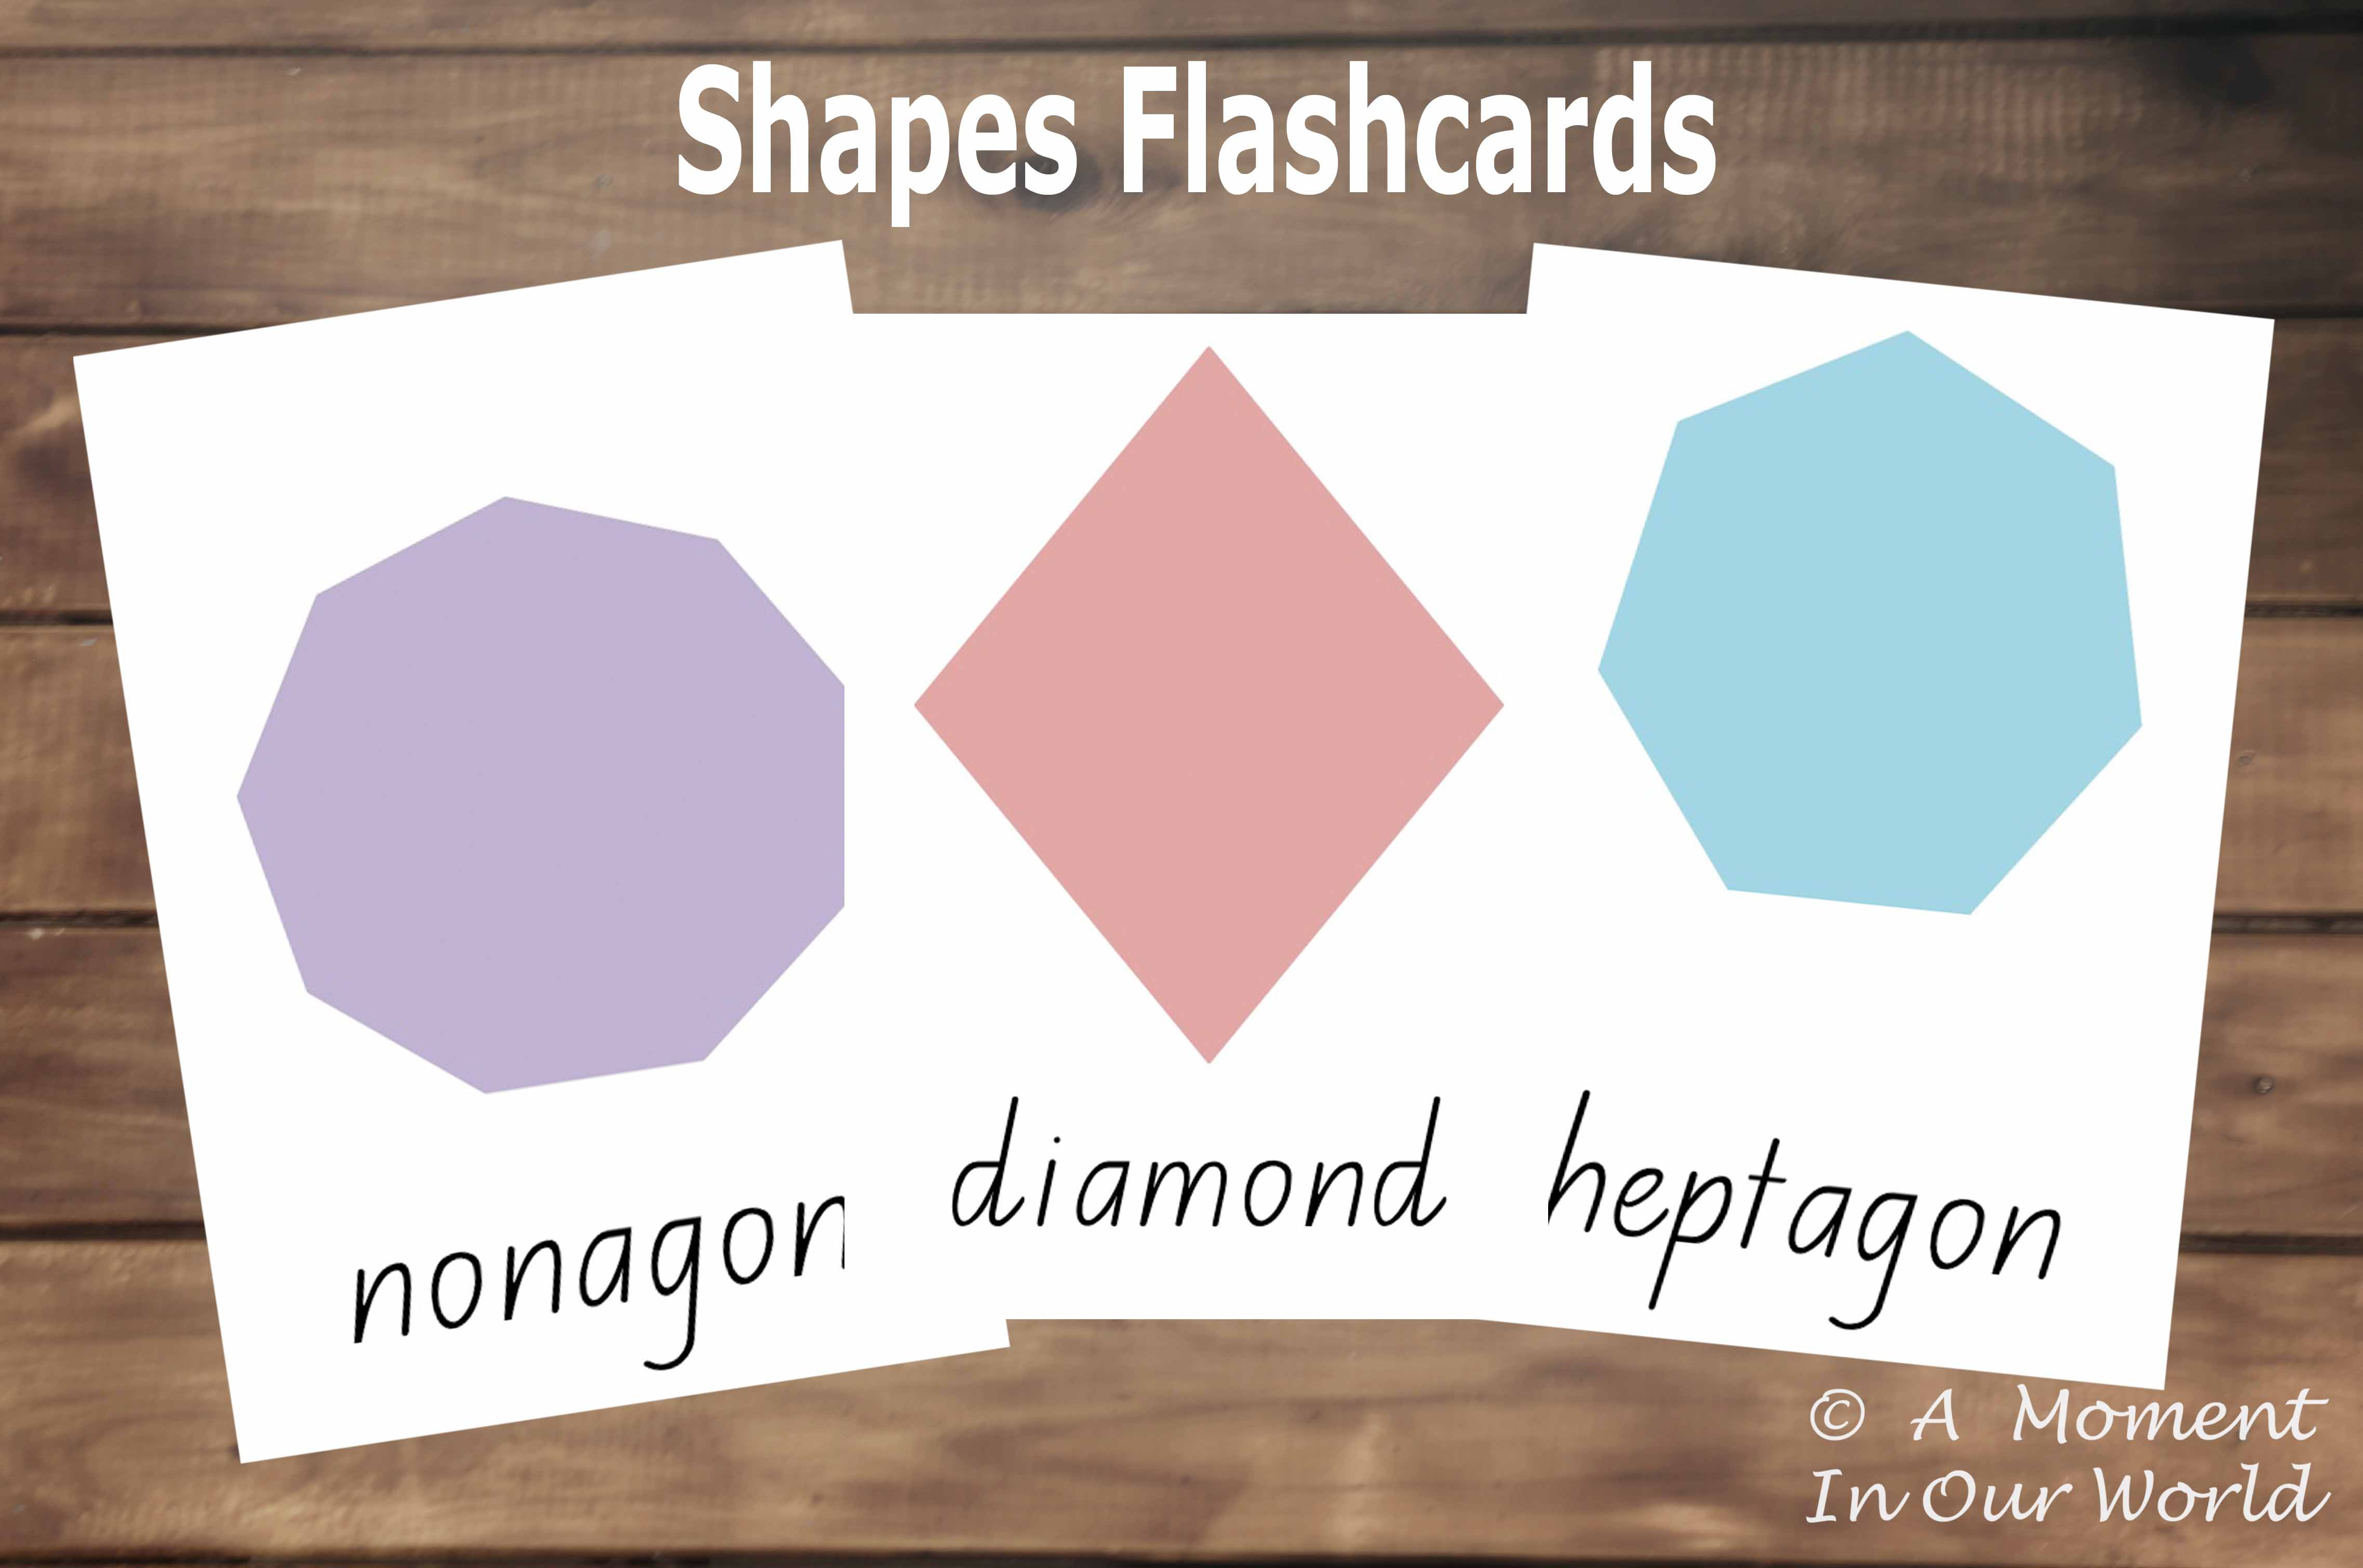 shapes flashcards picture